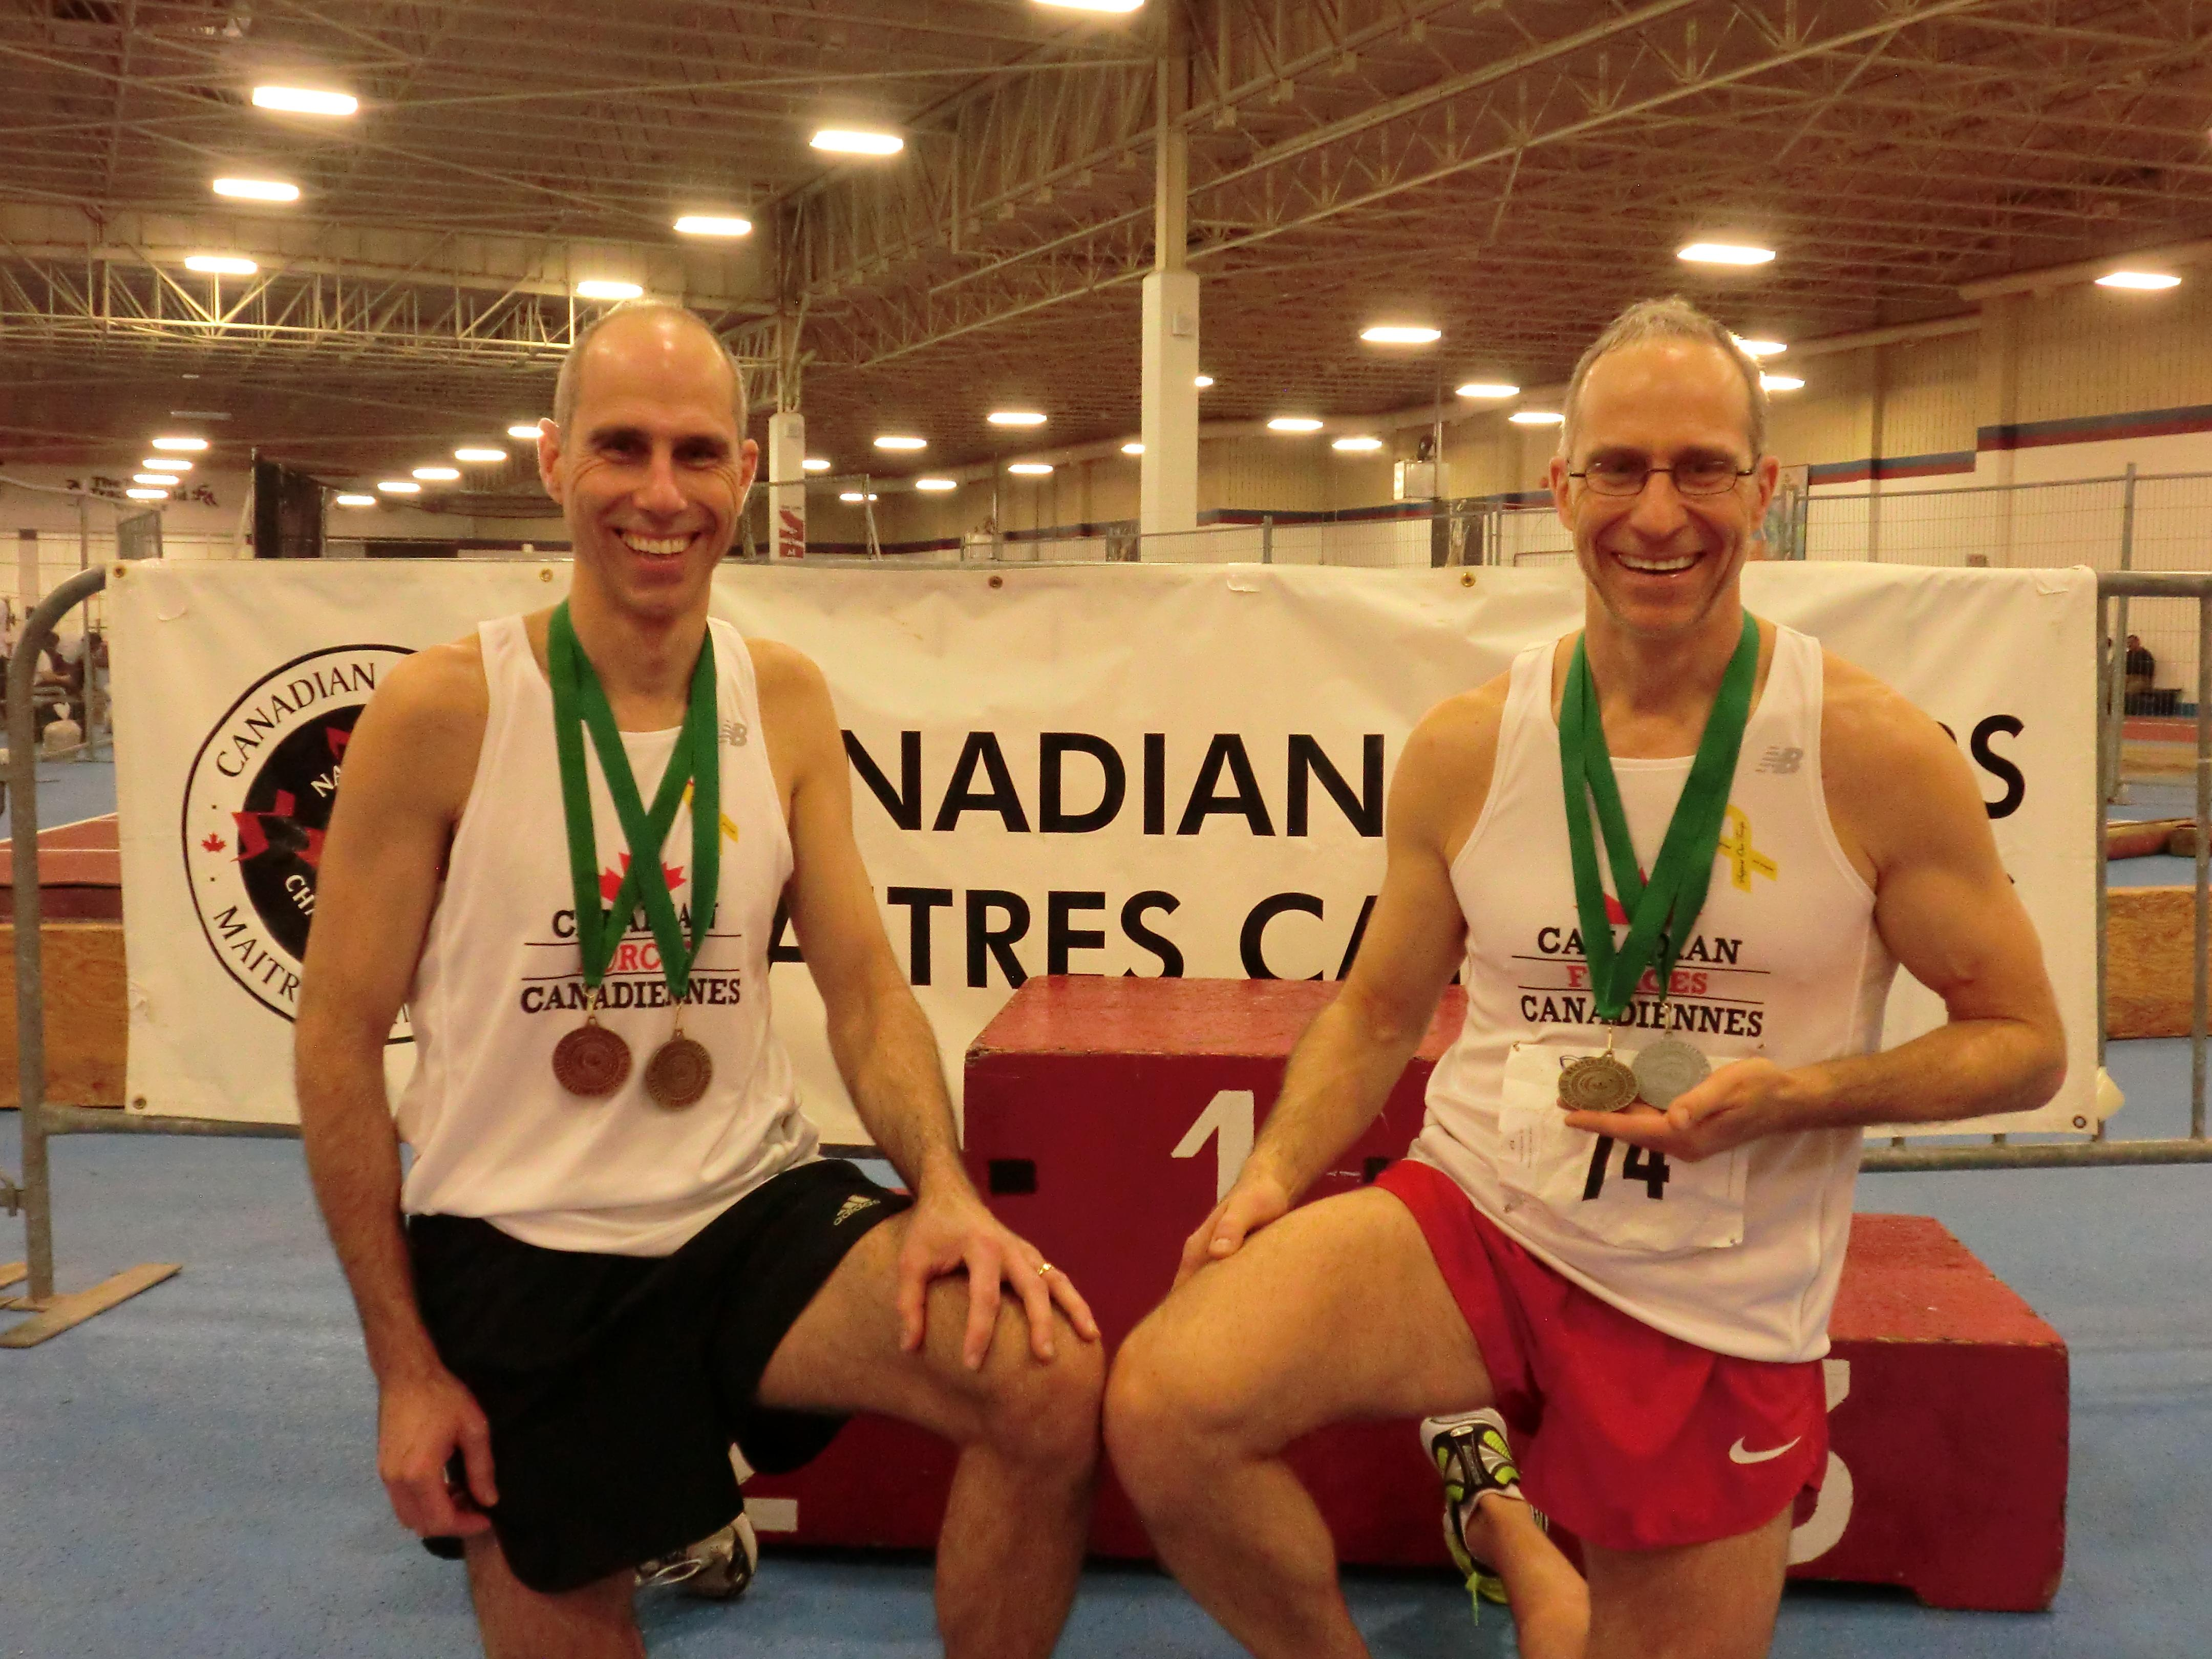 Royal Canadian Air Force brothers Master Warrant Officer Claude Faucher (left) and Major Serge Faucher display their medals at the Canadian Masters Athletics Indoor Championships held March 14 at the Toronto, Ontario, Track and Field Centre.